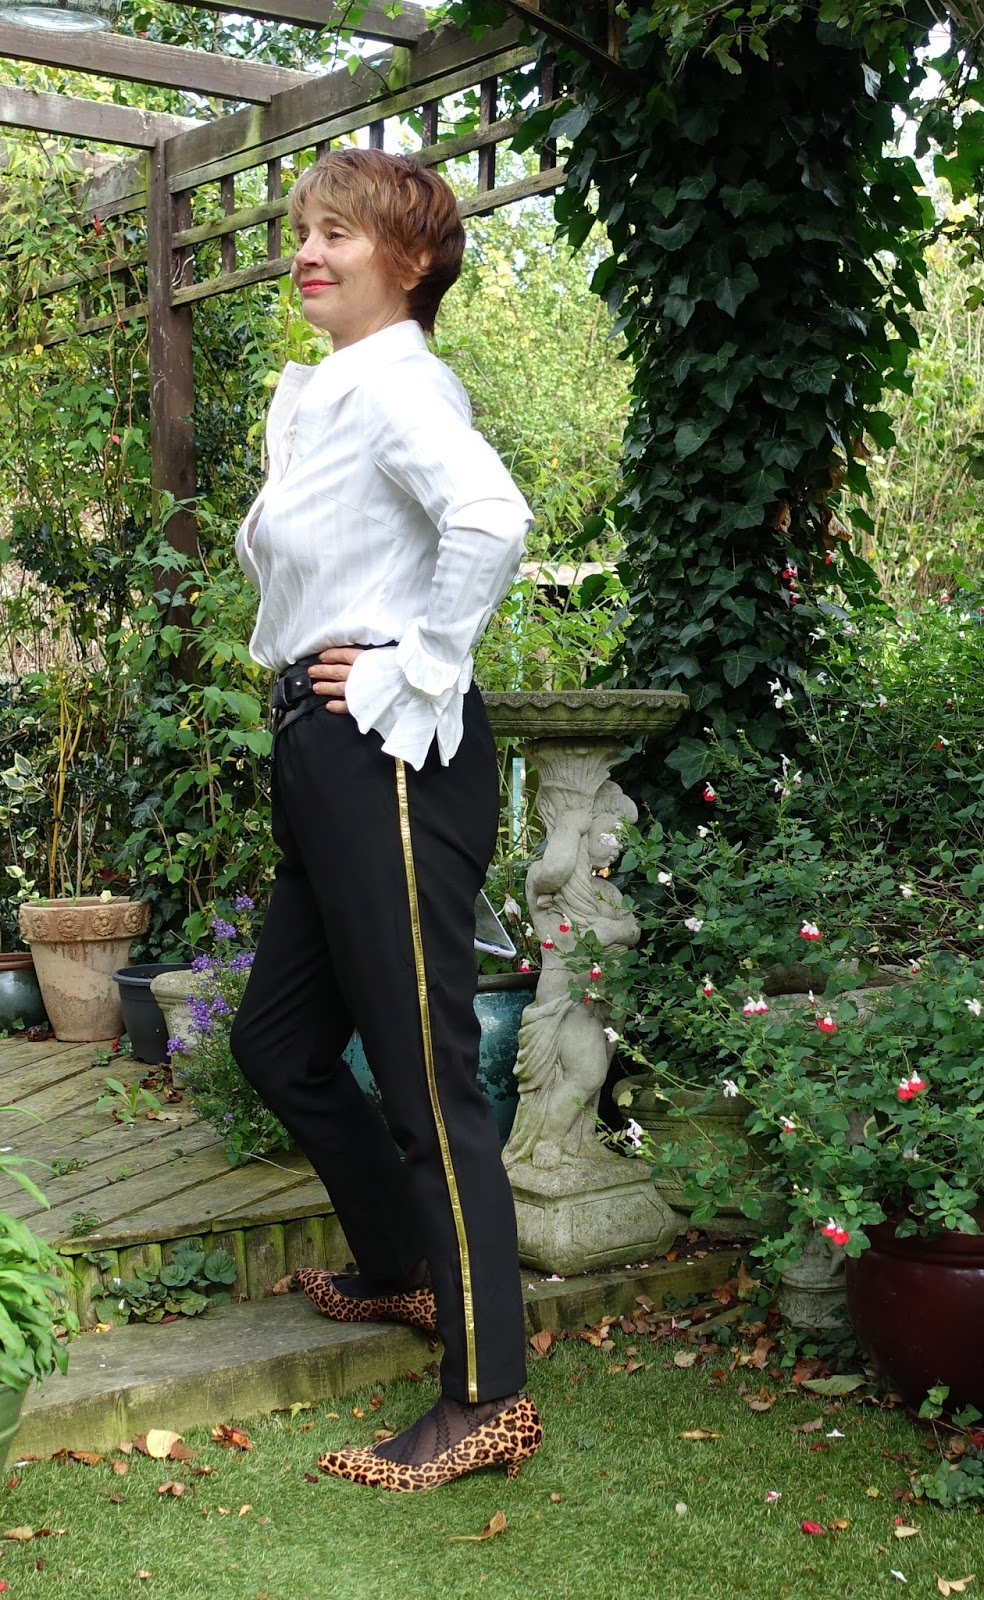 Image showing woman over 40 in black trousers with a gold side stripe and a frilled sleeve white tailored shirt